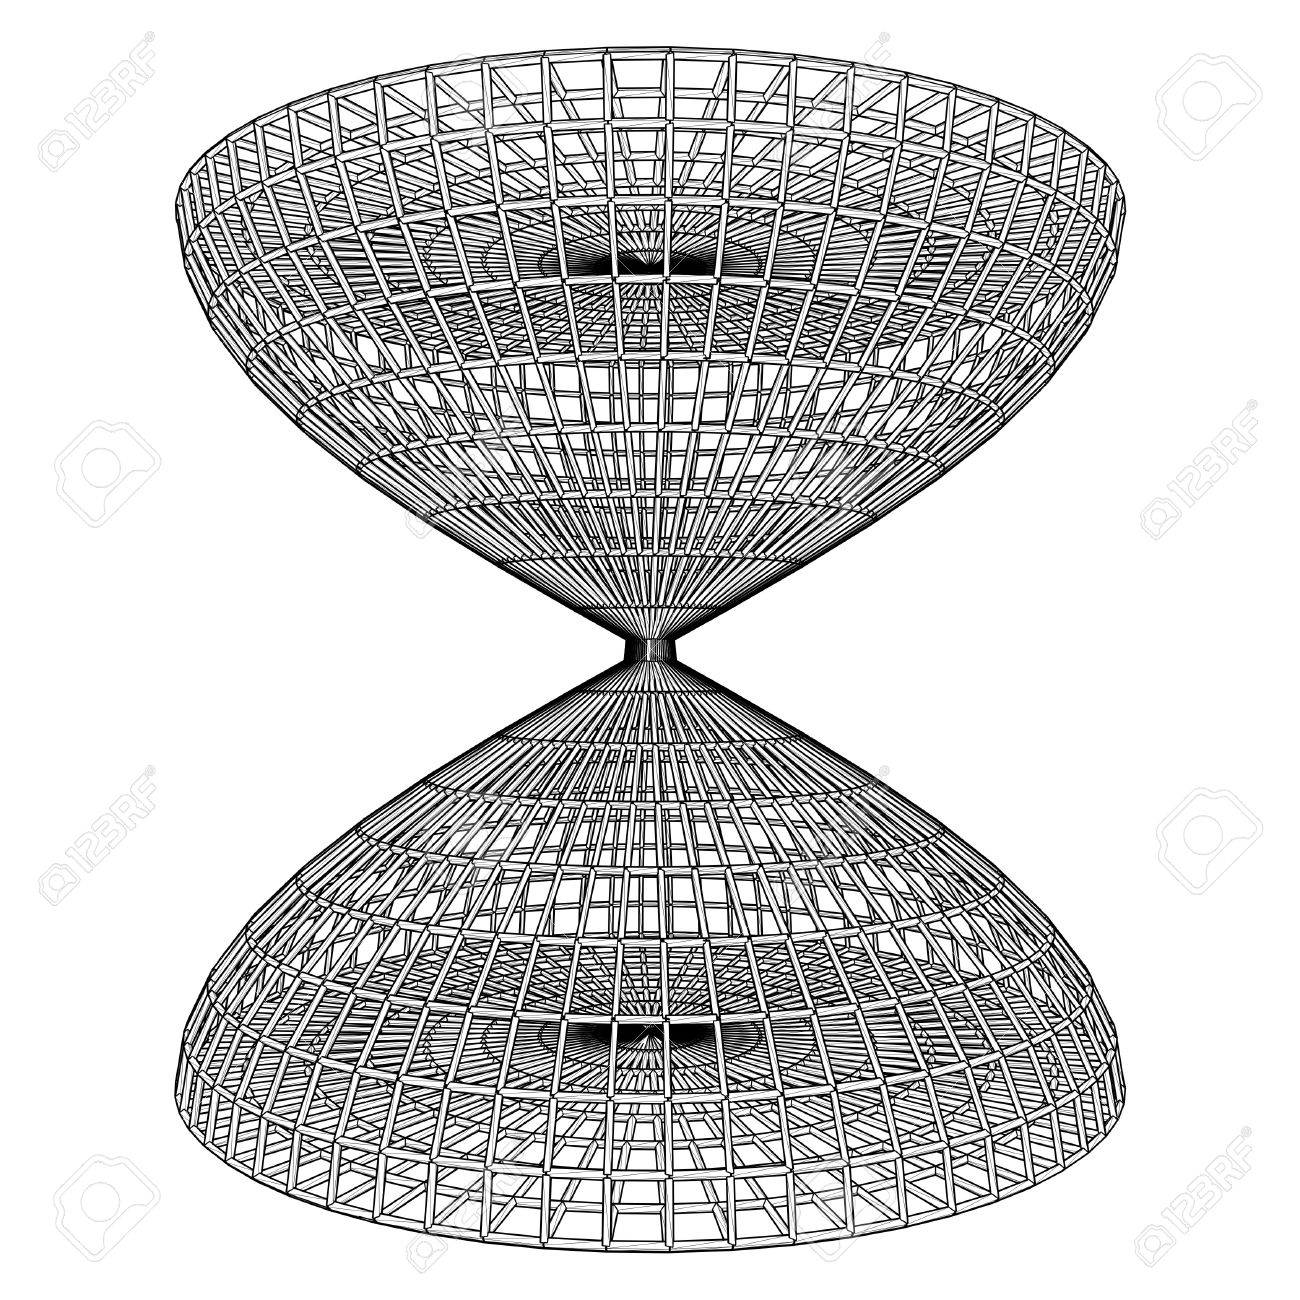 Structural Construction Of Hourglass Cage Vector Stock Vector - 25185095